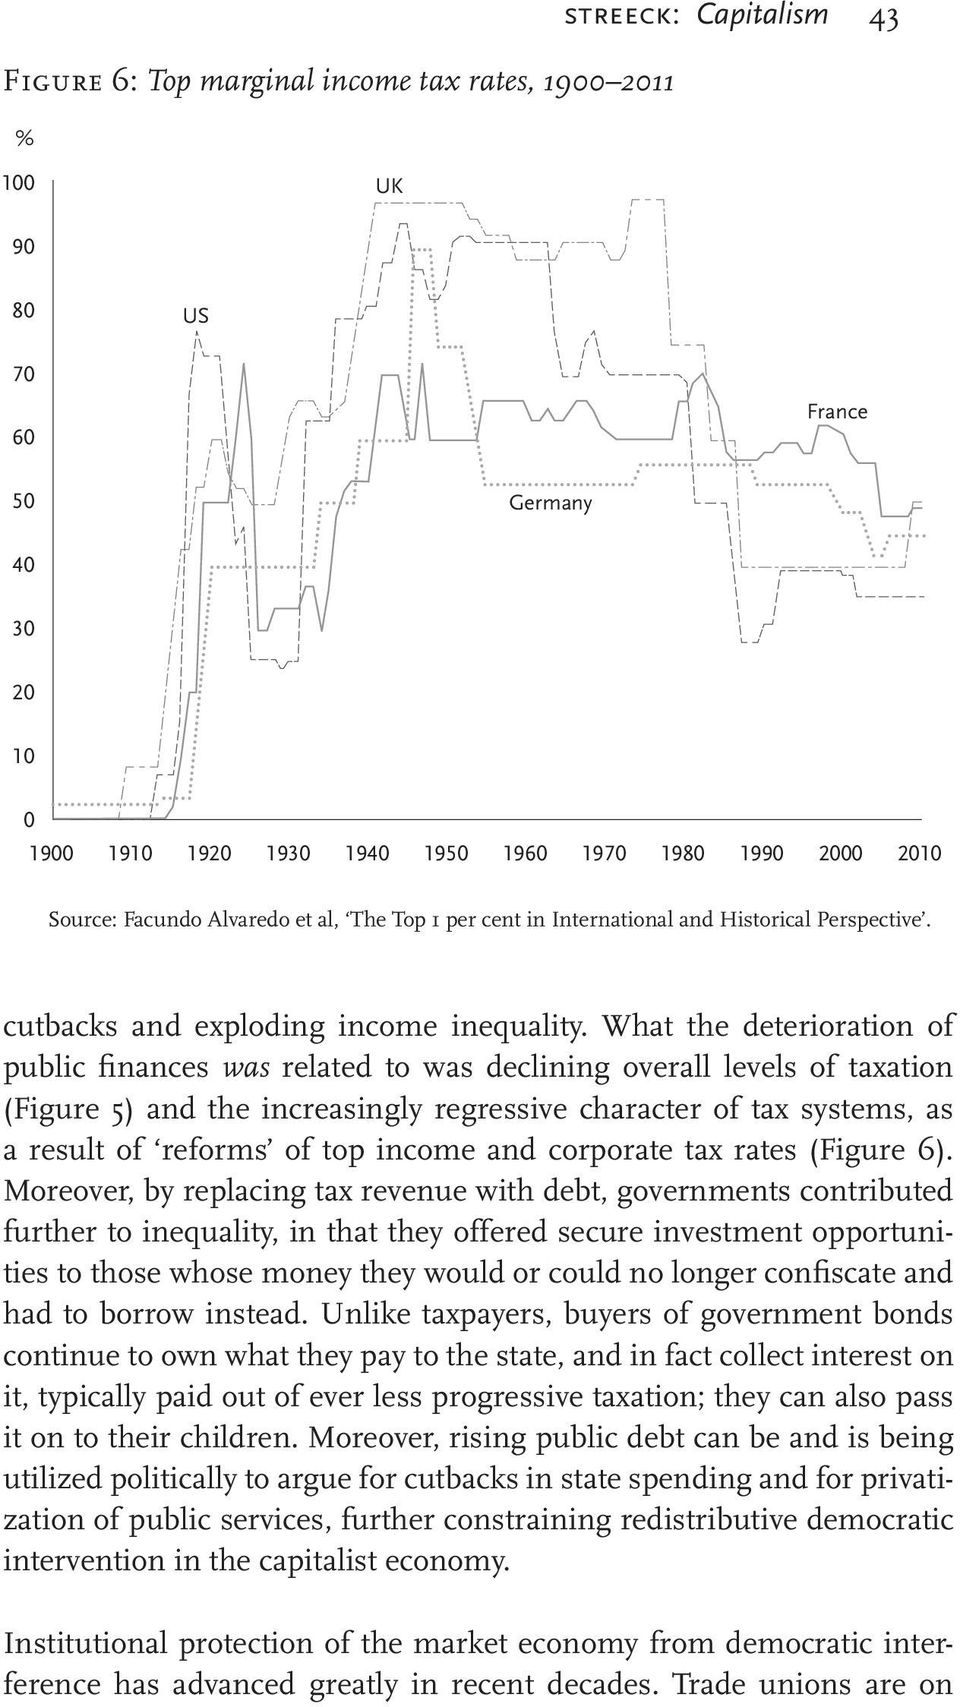 What the deterioration of public finances was related to was declining overall levels of taxation (Figure 5) and the increasingly regressive character of tax systems, as a result of reforms of top